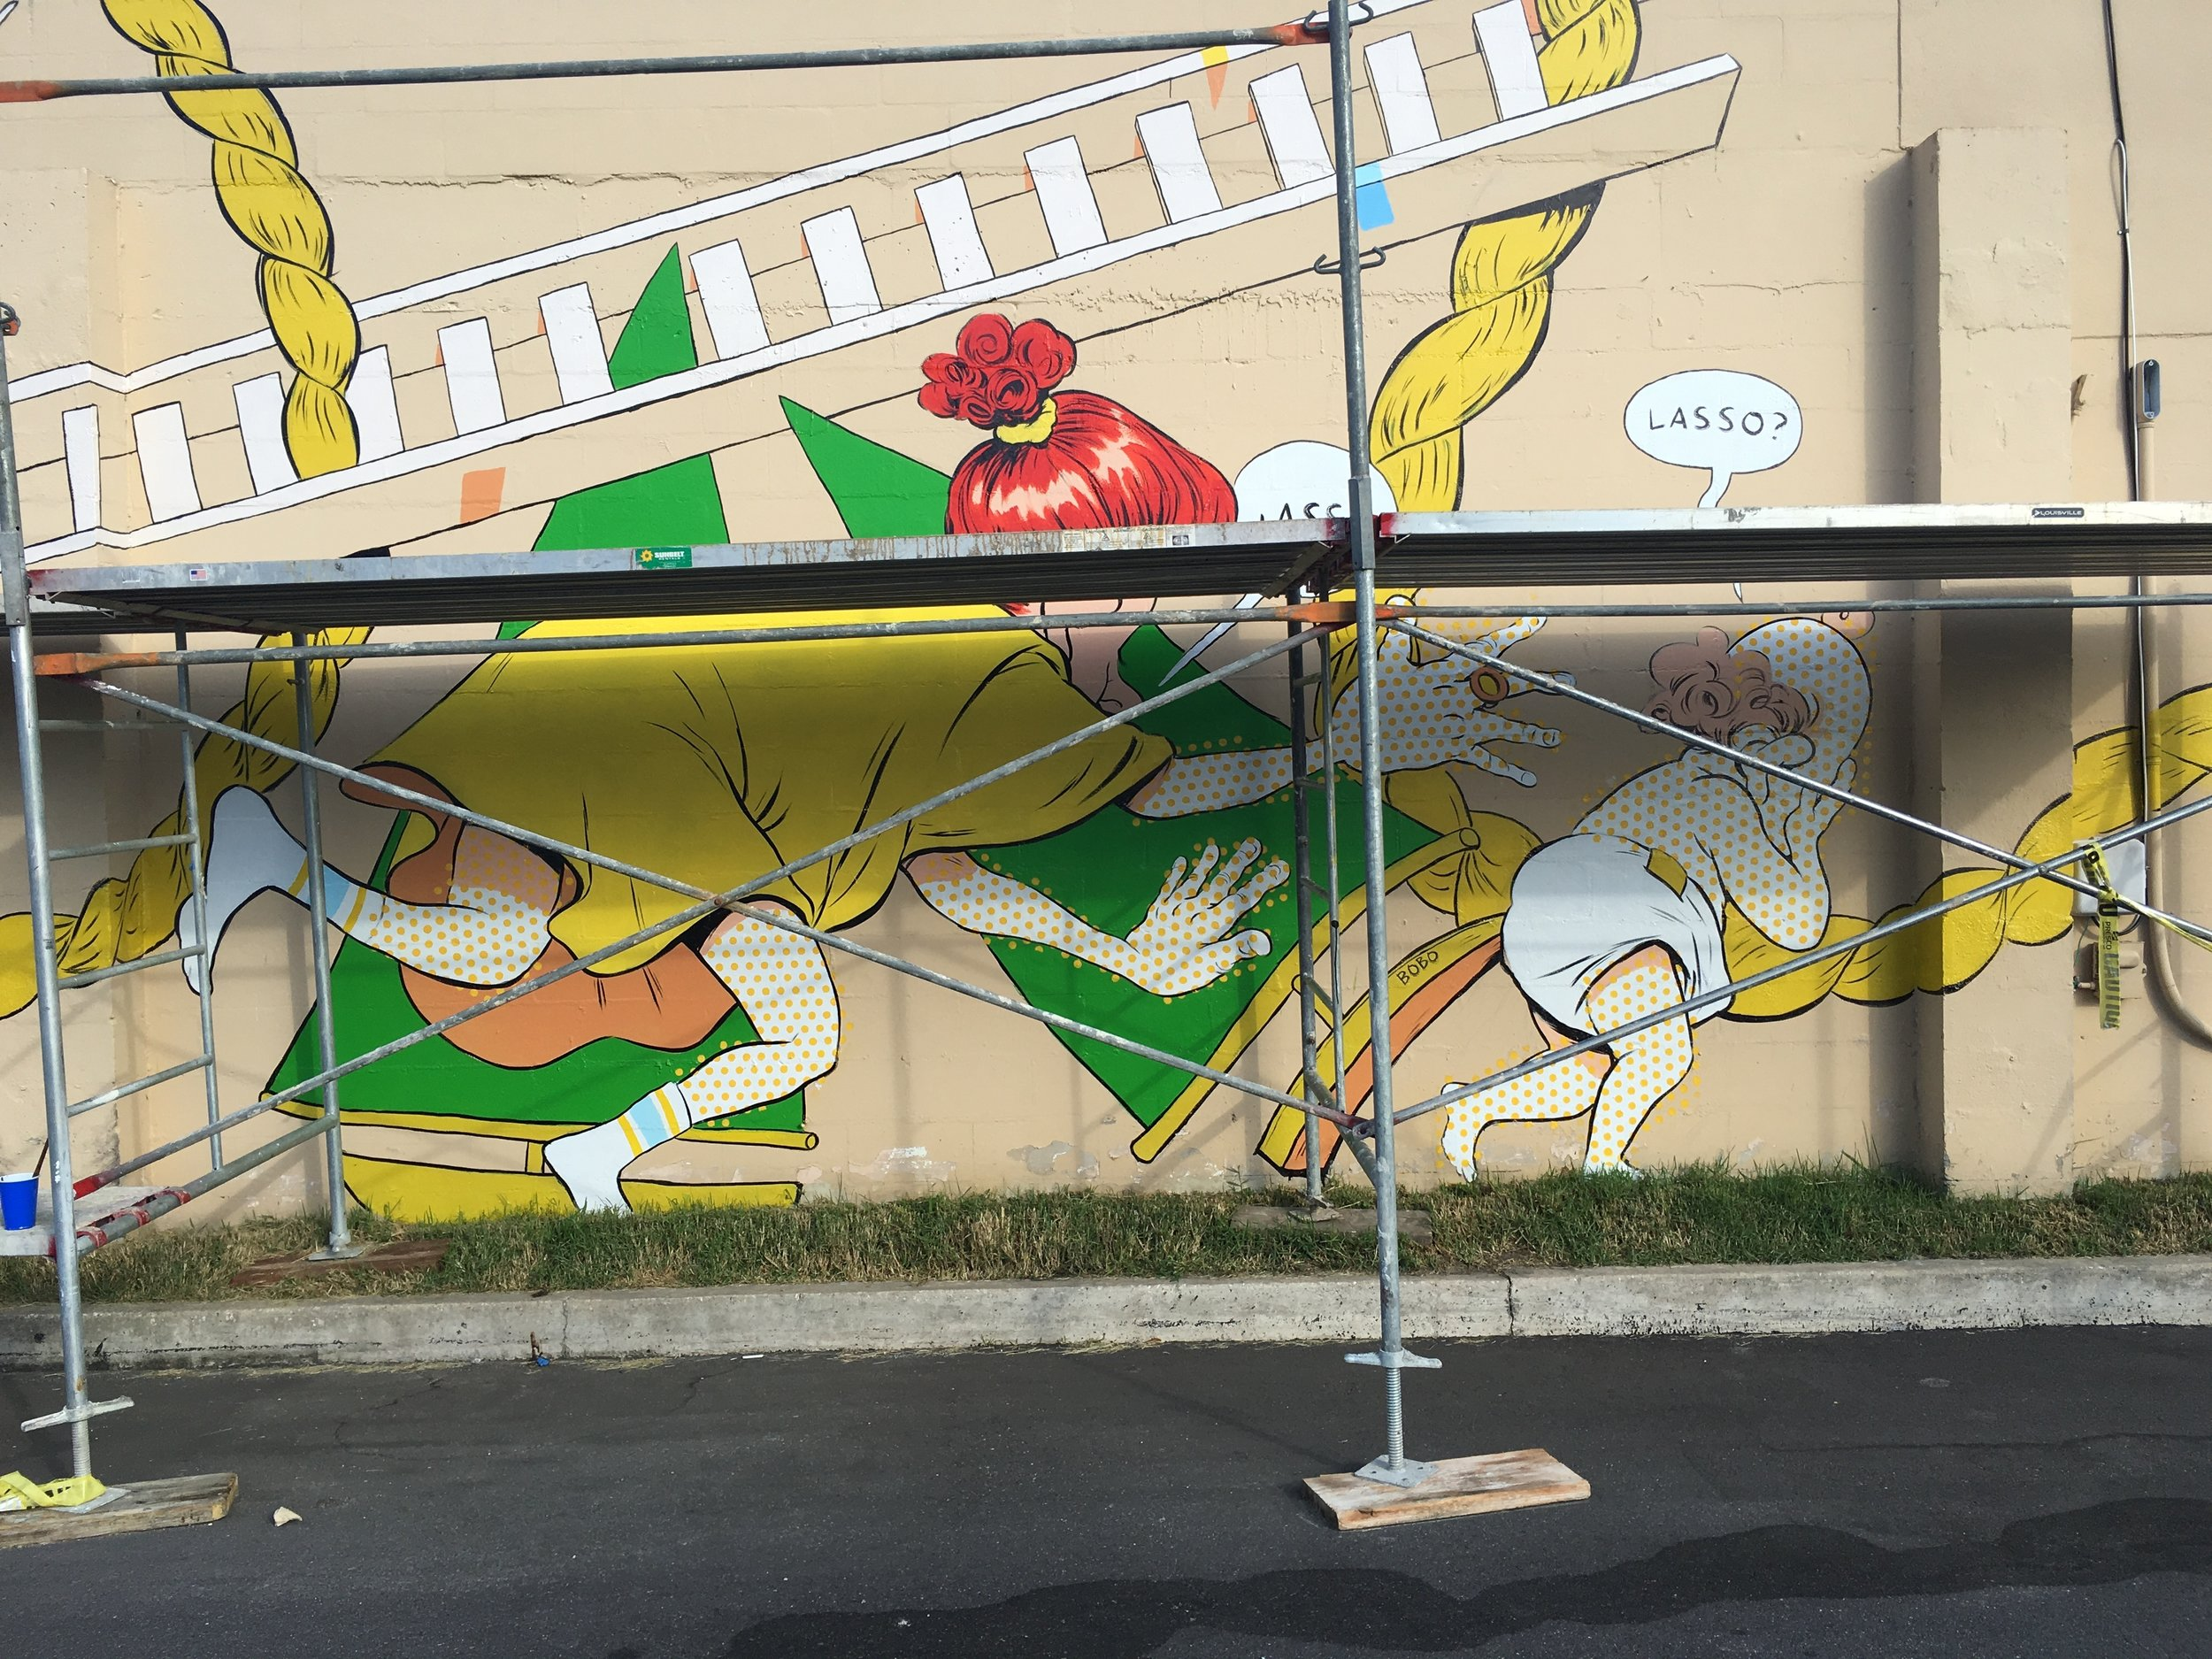 A big ol' mural in Murray Hill, Jacksonville, FL. - This bad boy titled 'Lasso' consumed me for a full month in the late summer of 2016. At times I felt that I was going to die in the blistering heat of a Jacksonville summer with a massive 120 foot wall reflecting light onto me. Thanks to Jason Tetlak of the Murray Hill Preservation Association for securing funding for such a big project. If you're ever in Jacksonville make sure to give it a look-see on Edgewood Drive. You can't miss it!